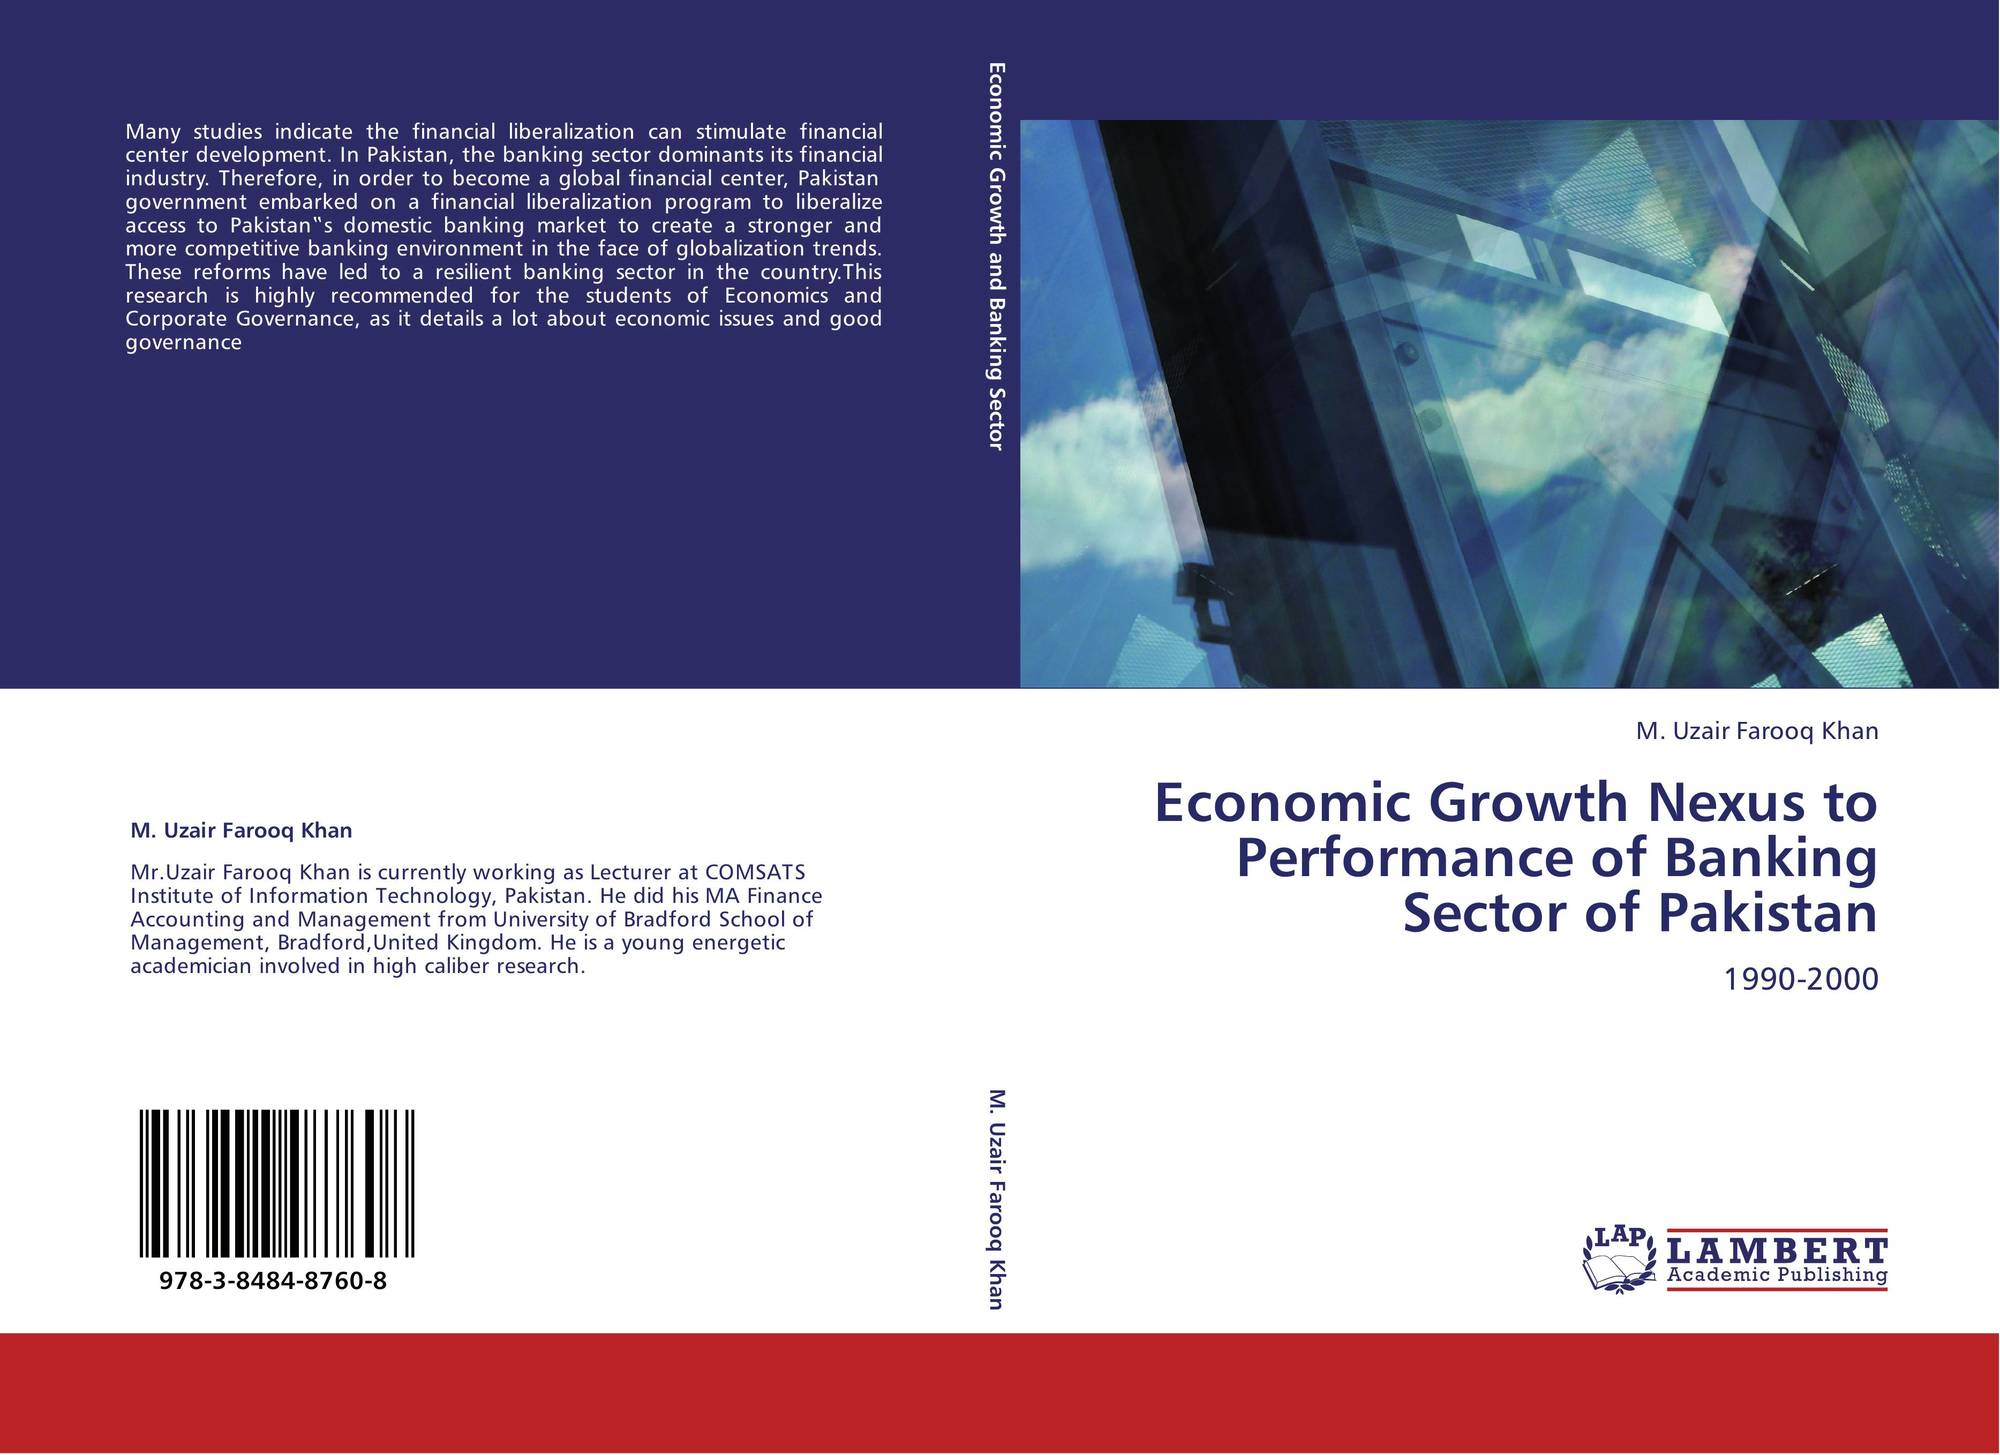 pakistan banking sector The economy of pakistan is the 24th largest in the world in terms of pakistan's banking sector has remained remarkably strong and resilient during the world.